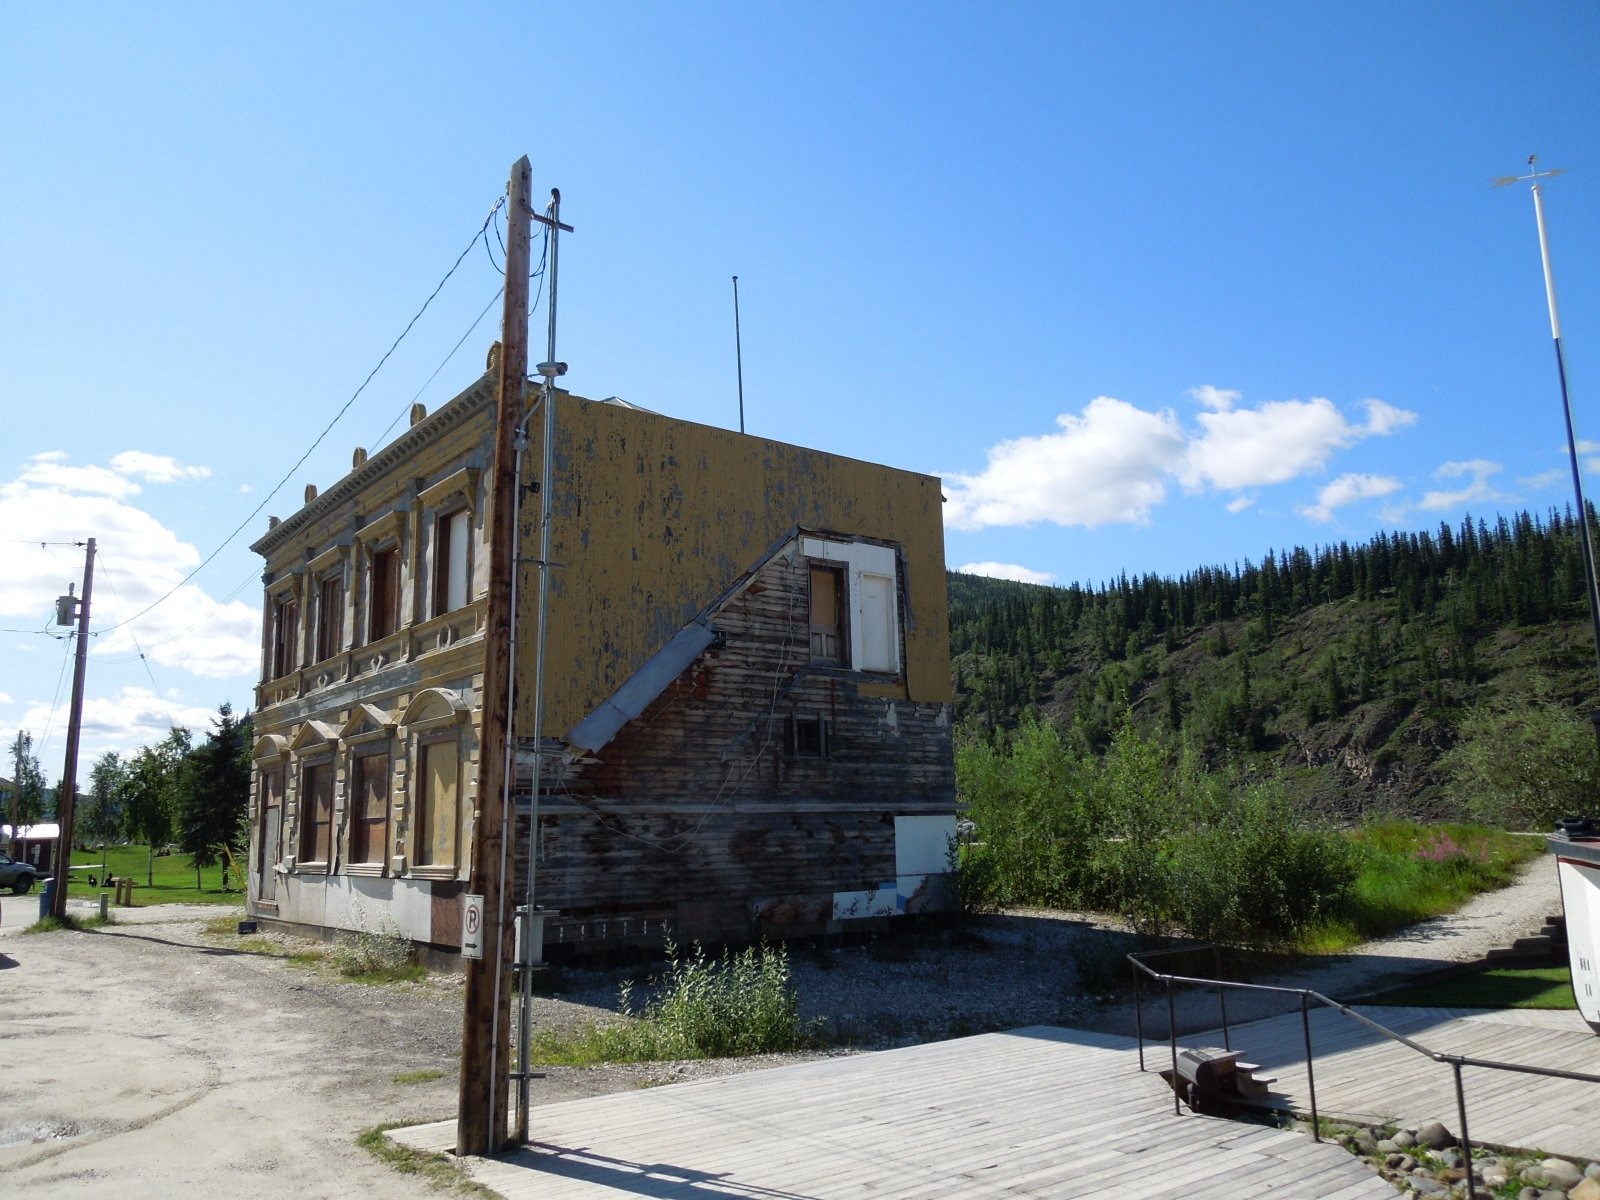 Click image for larger version  Name:Tok to Chicken to Dawson City 319.jpg Views:77 Size:325.6 KB ID:221754